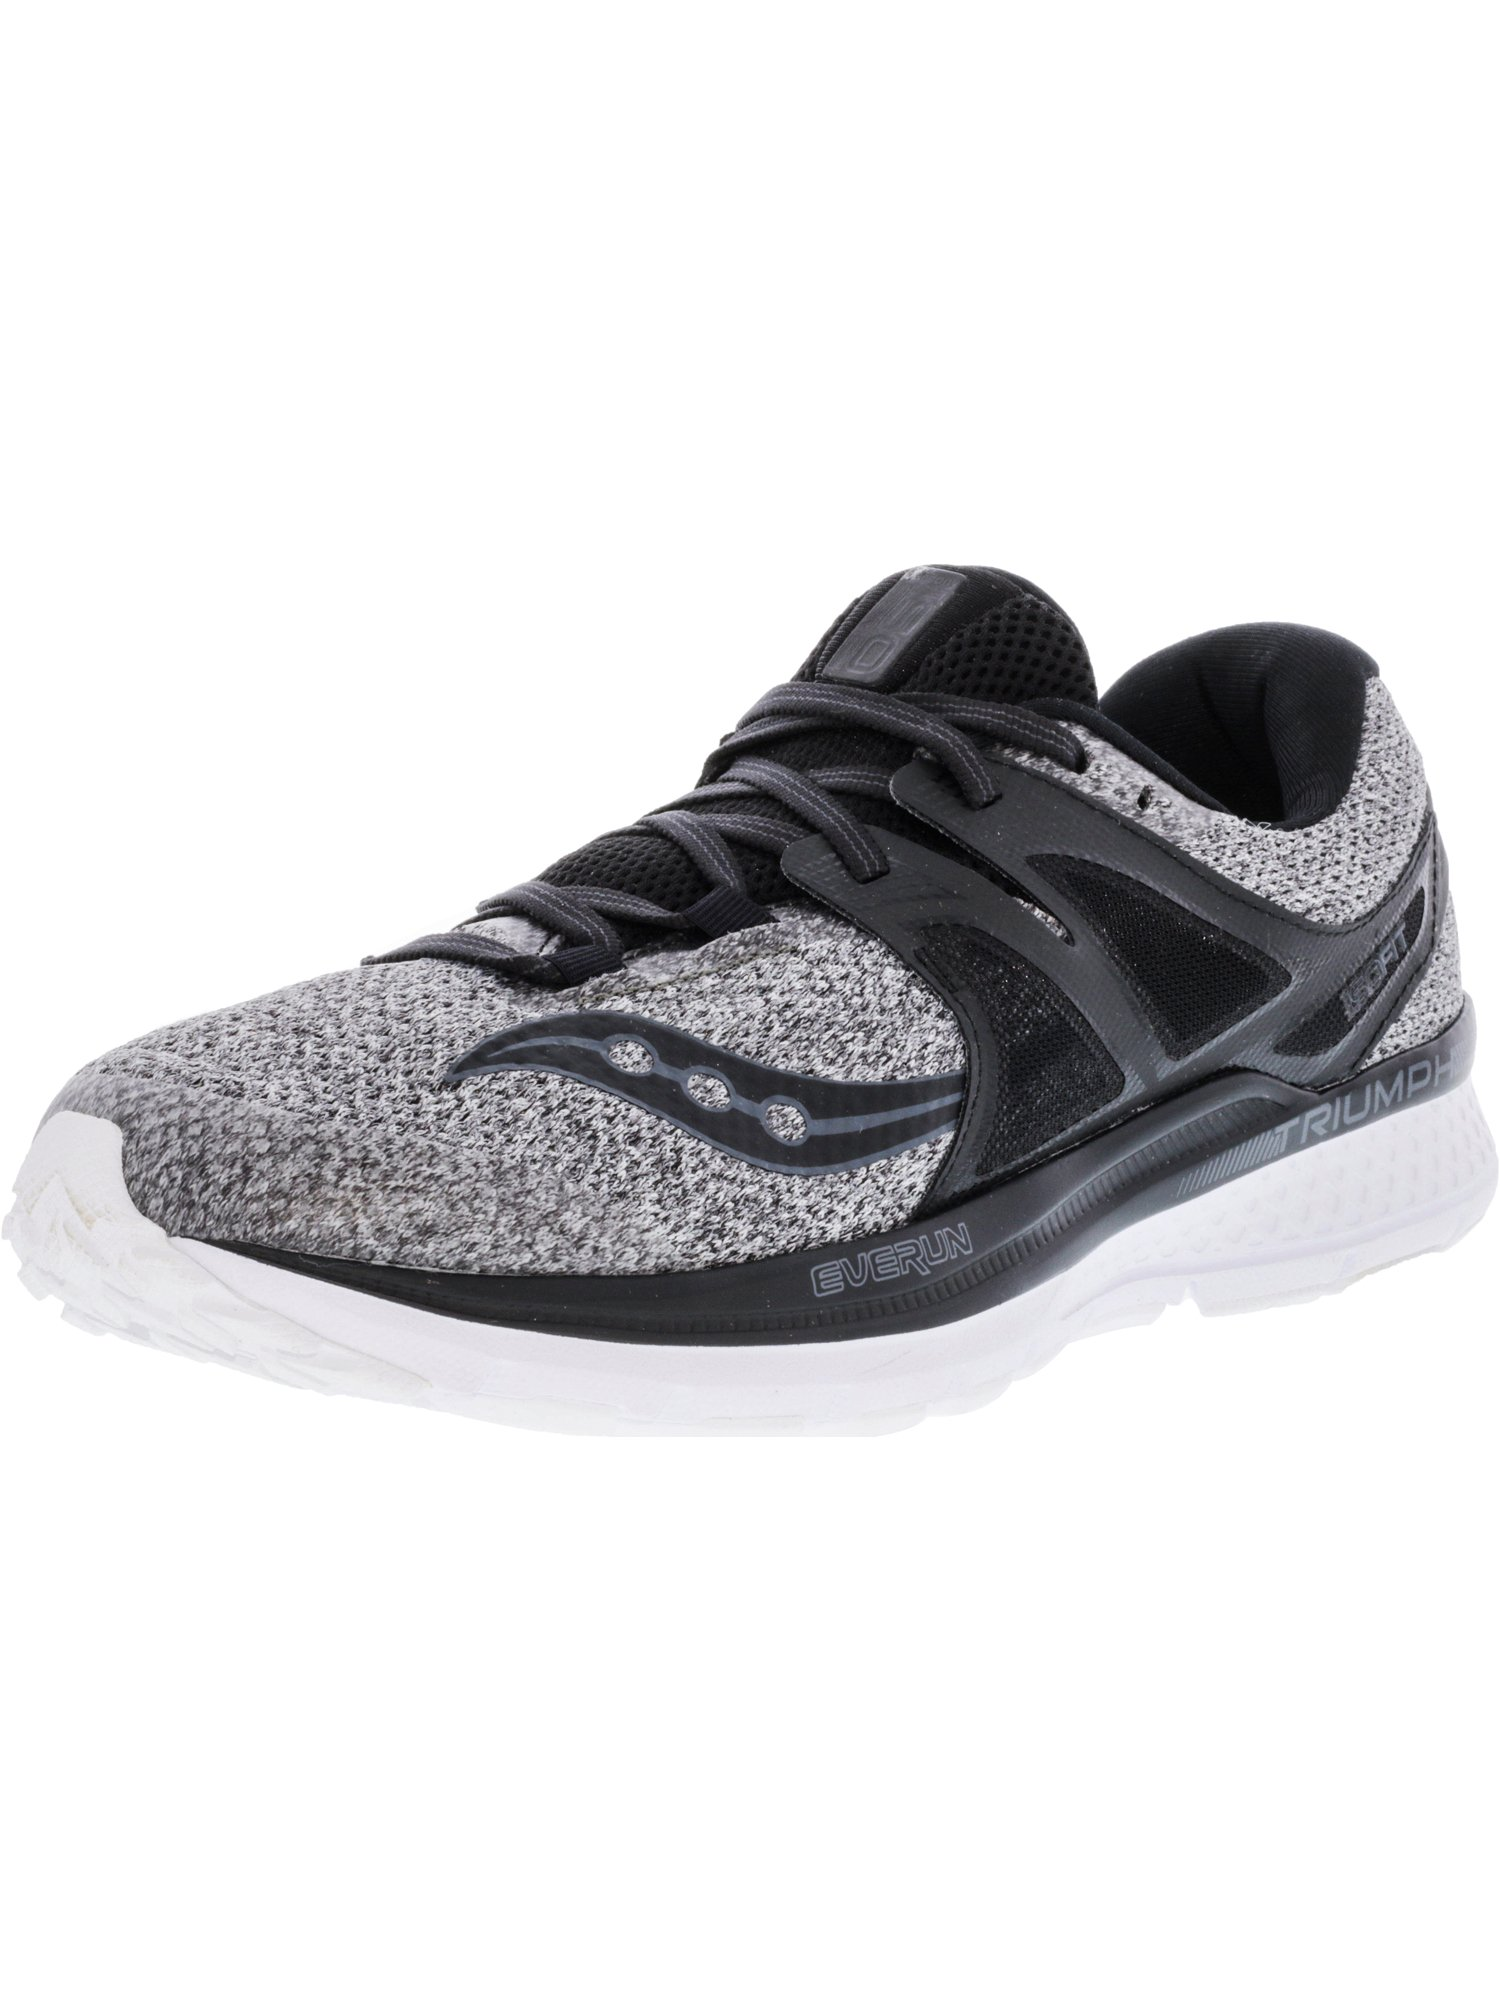 Saucony Men's Triumph Iso 3 Lr Grey   Black Ankle-High Running Shoe 9M by Saucony